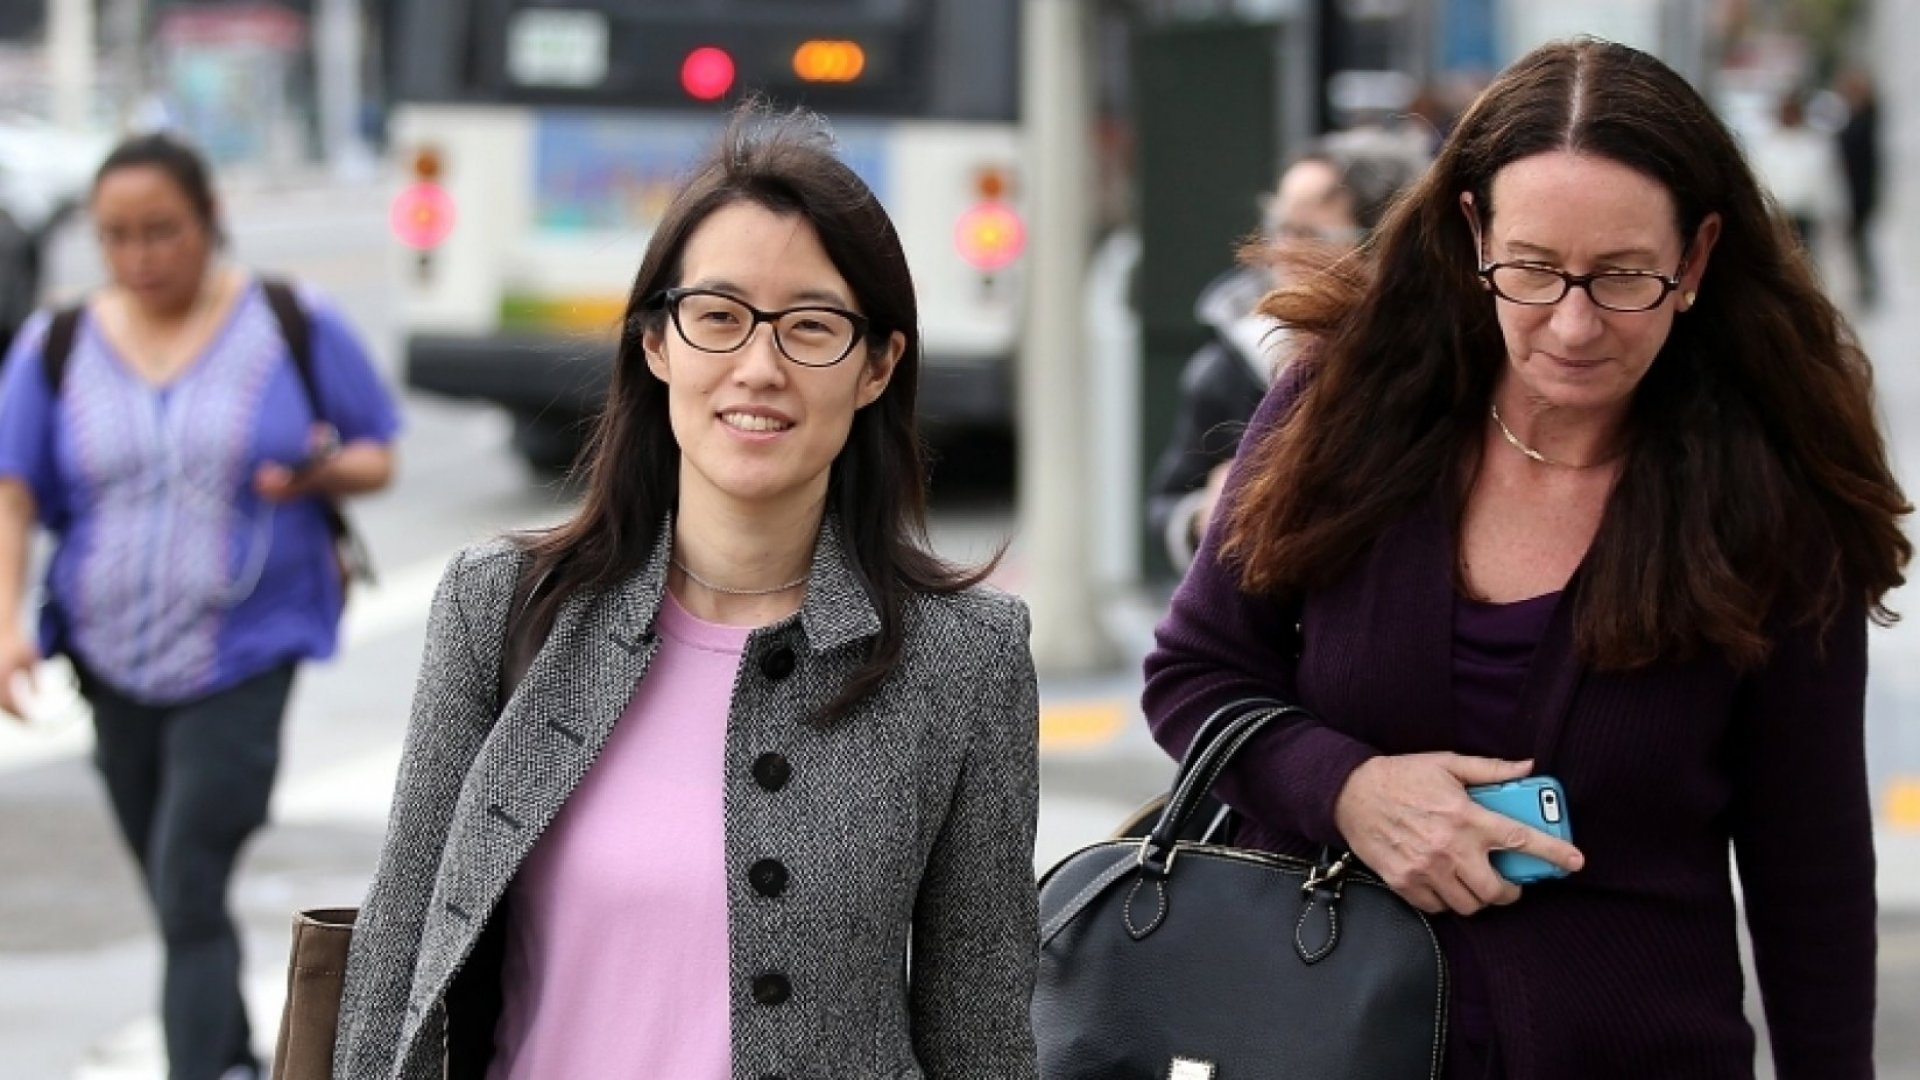 Why Everyone Looks Bad in the Ellen Pao Case